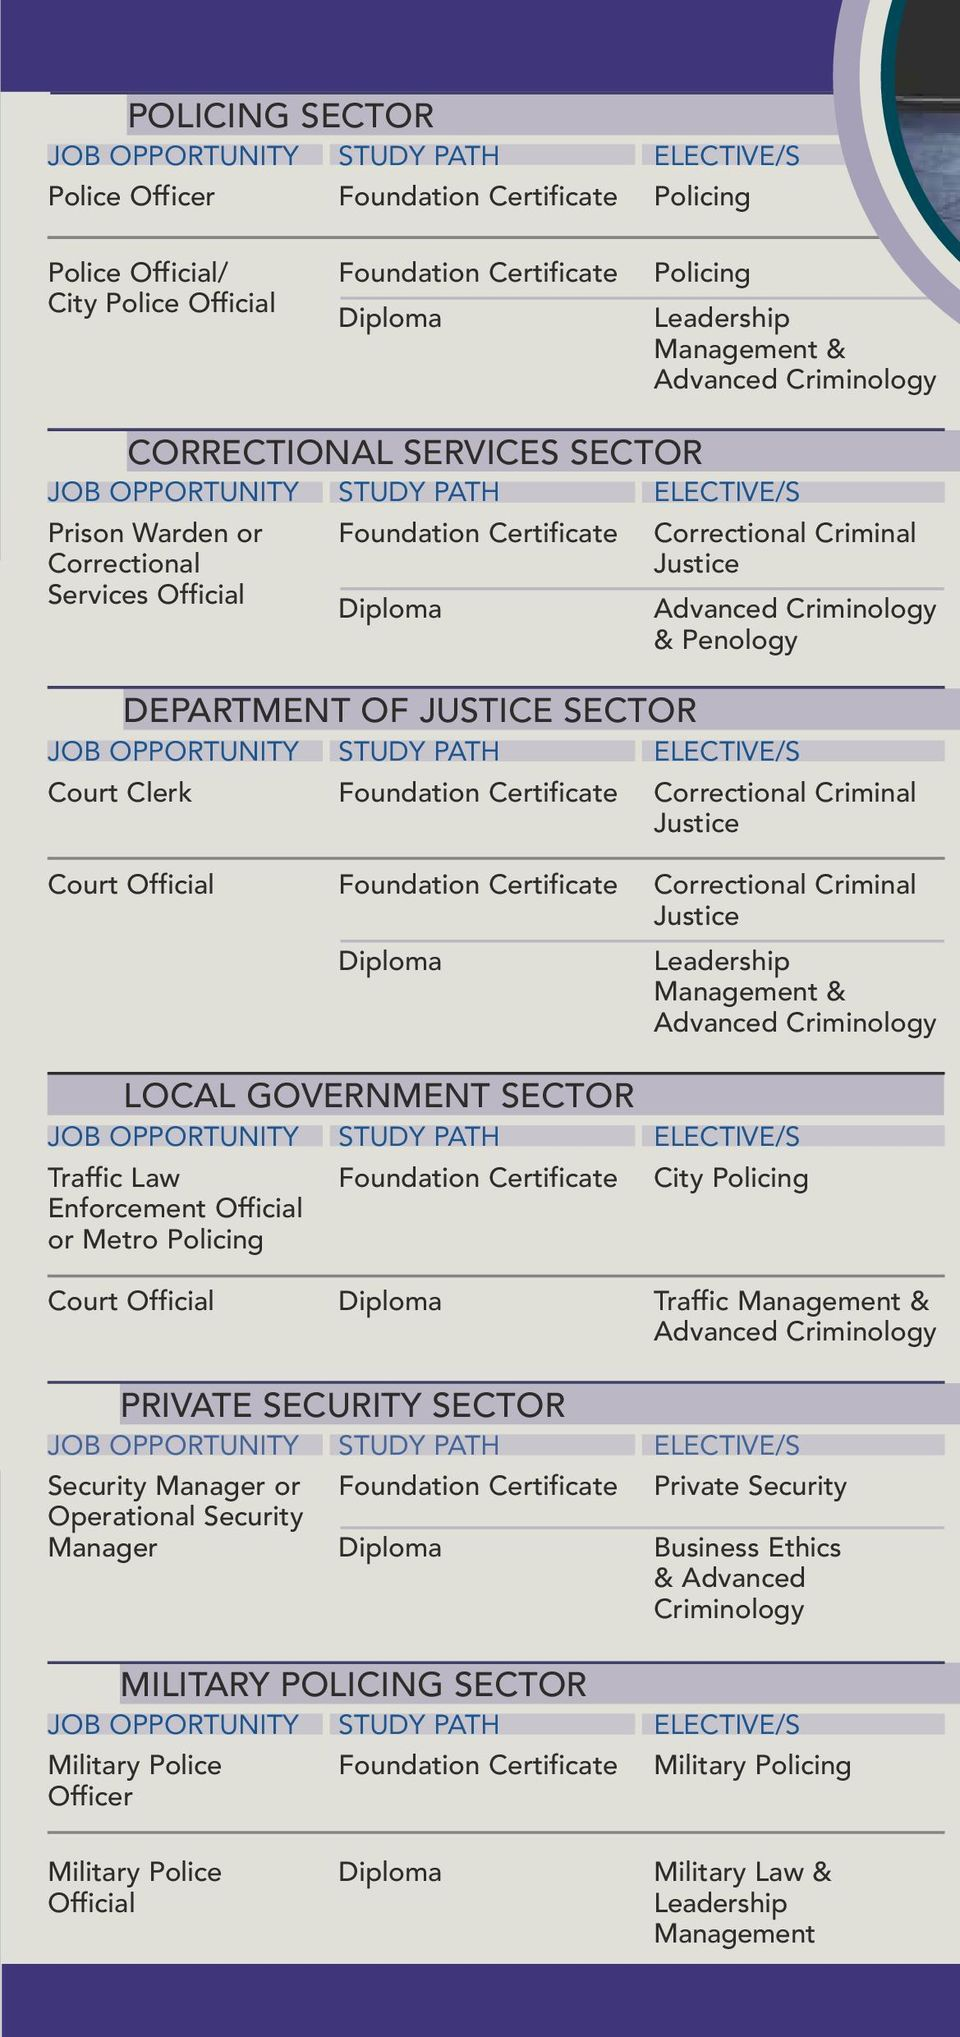 Penology DEPARTMENT OF JUSTICE SECTOR JOB OPPORTUNITY Court Clerk STUDY PATH Foundation Certificate Correctional Criminal Justice Court Official Foundation Certificate Correctional Criminal Justice